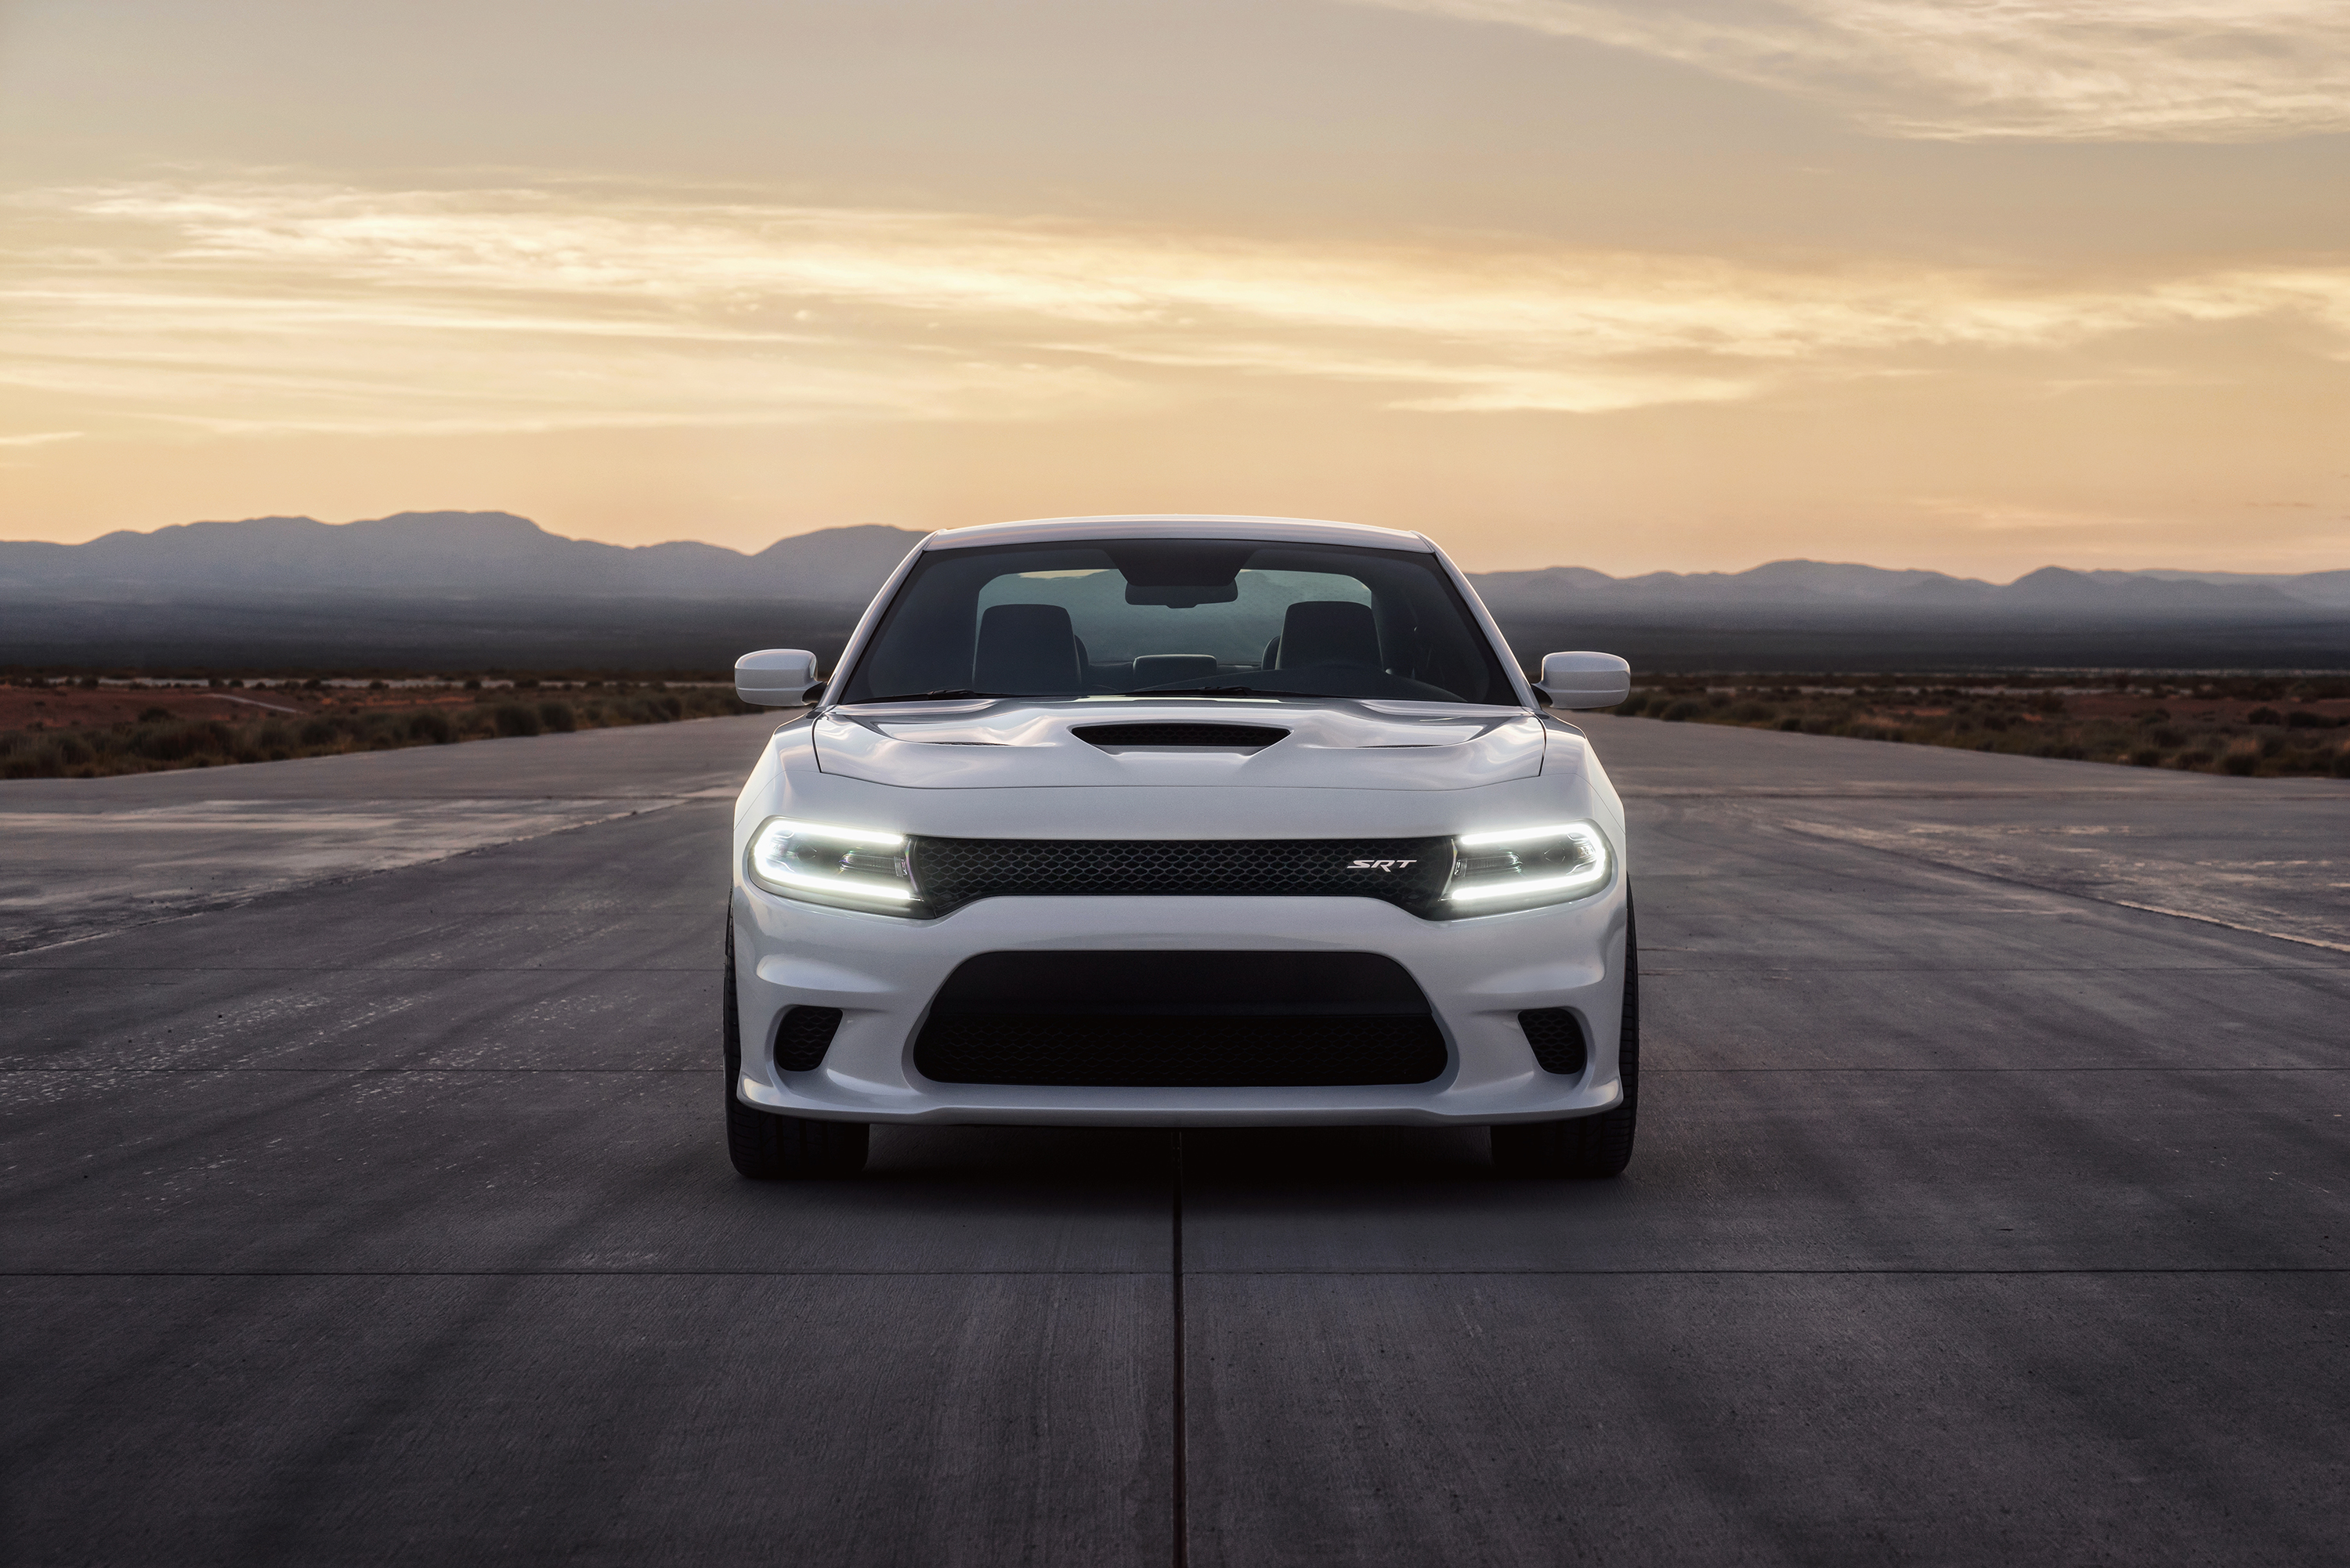 Charger Srt Hellcat >> Dodge Charger SRT Hellcat – 707 hp V8 muscle saloon Image ...